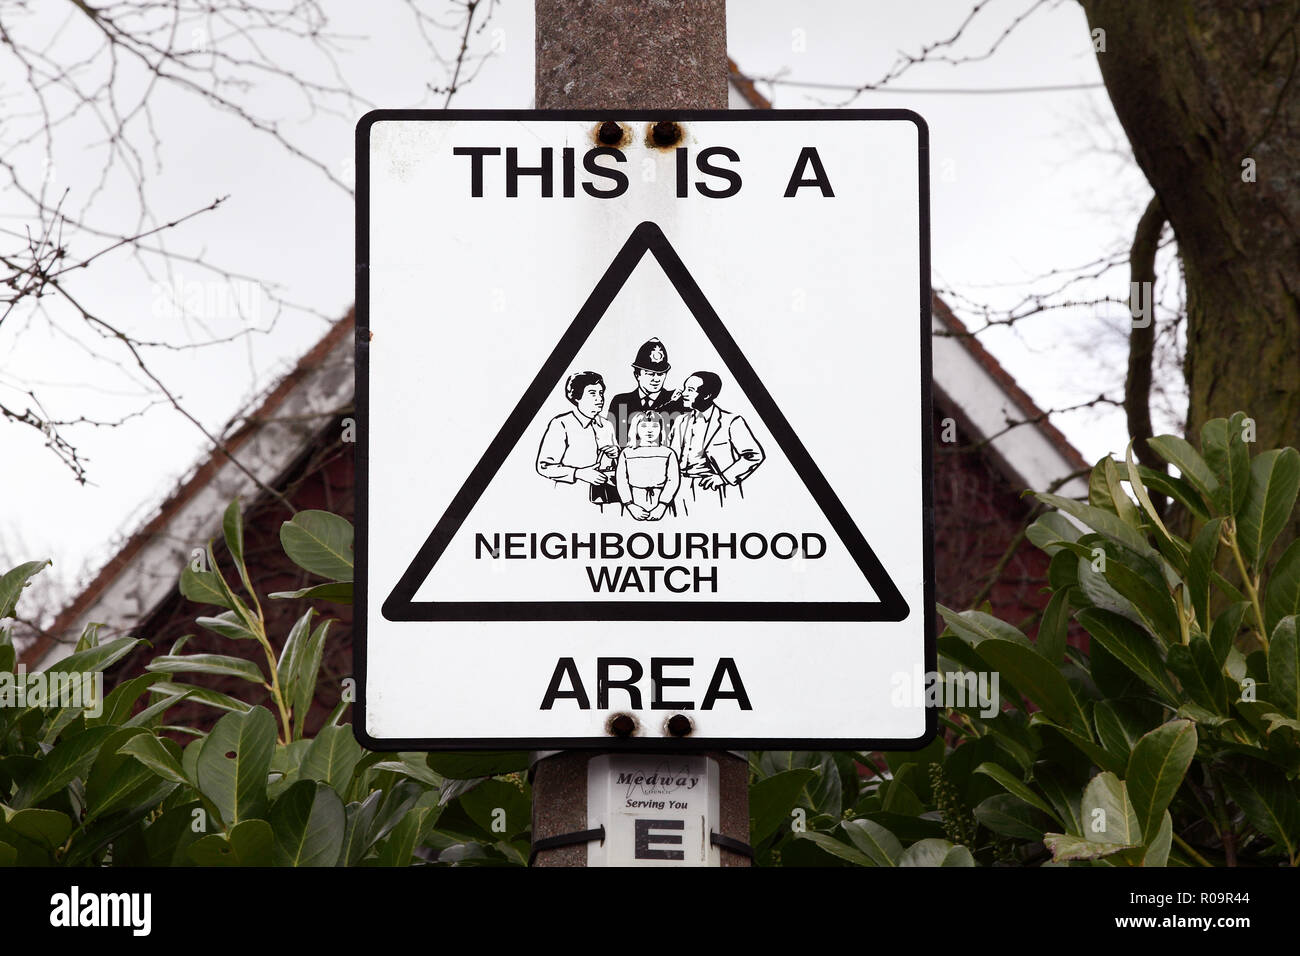 This is a neighbourhood watch area sign. - Stock Image